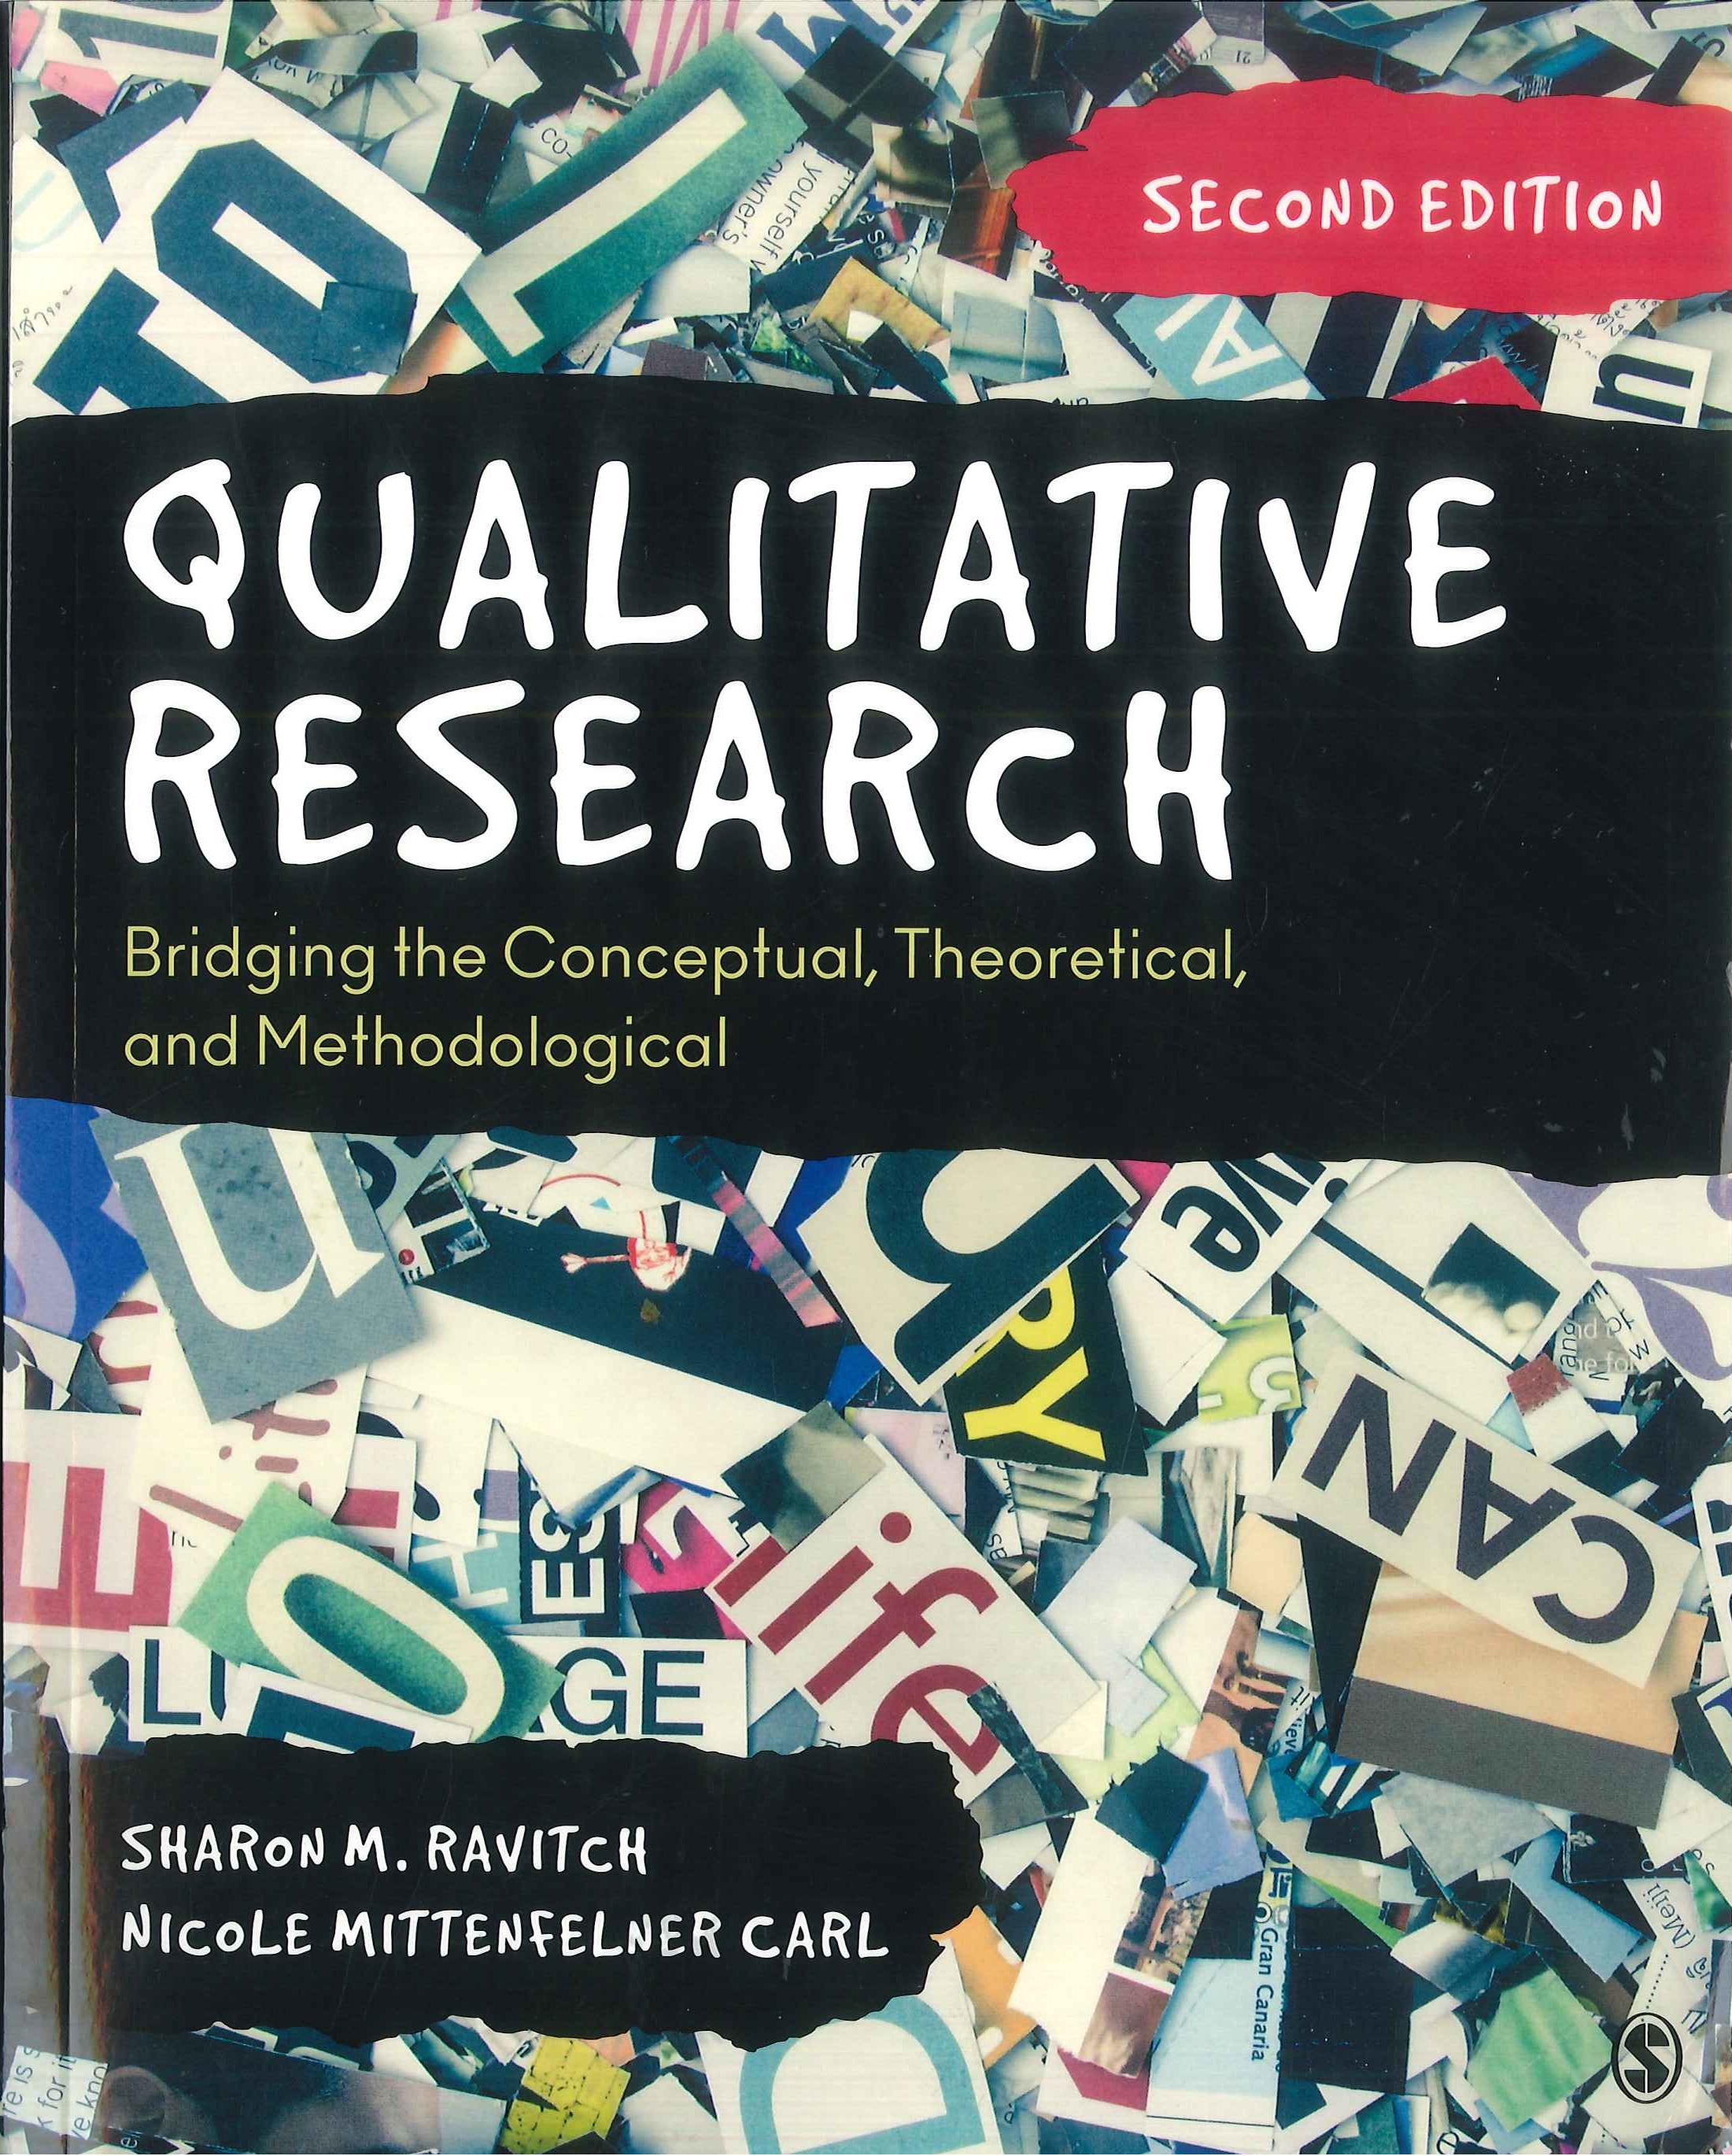 Qualitative research:bridging the conceptual, theoretical, and methodological